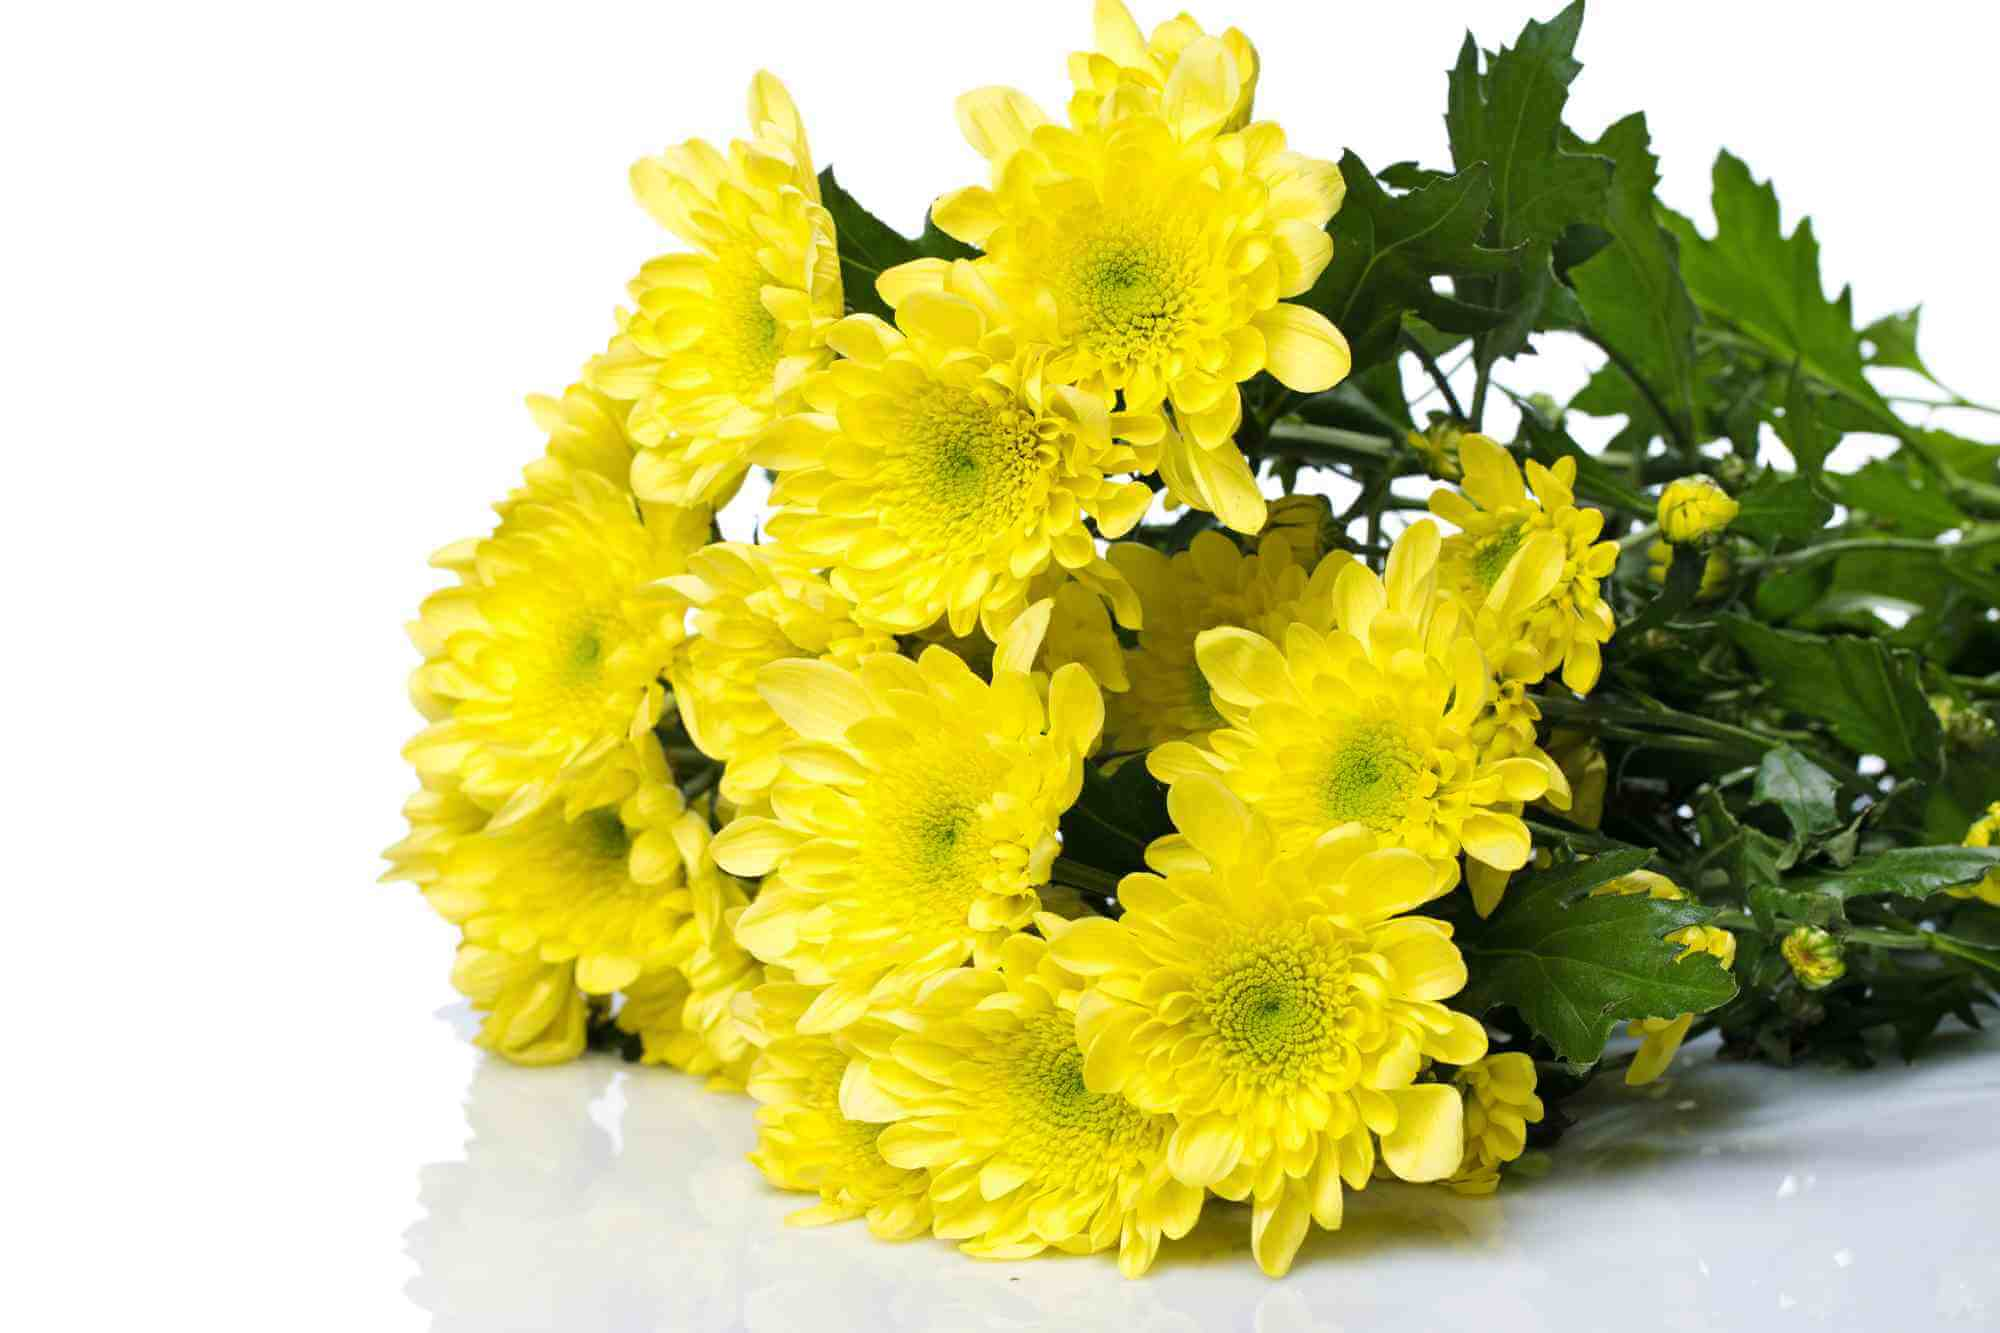 Buddhist funeral bouquet of yellow chrysanthemums